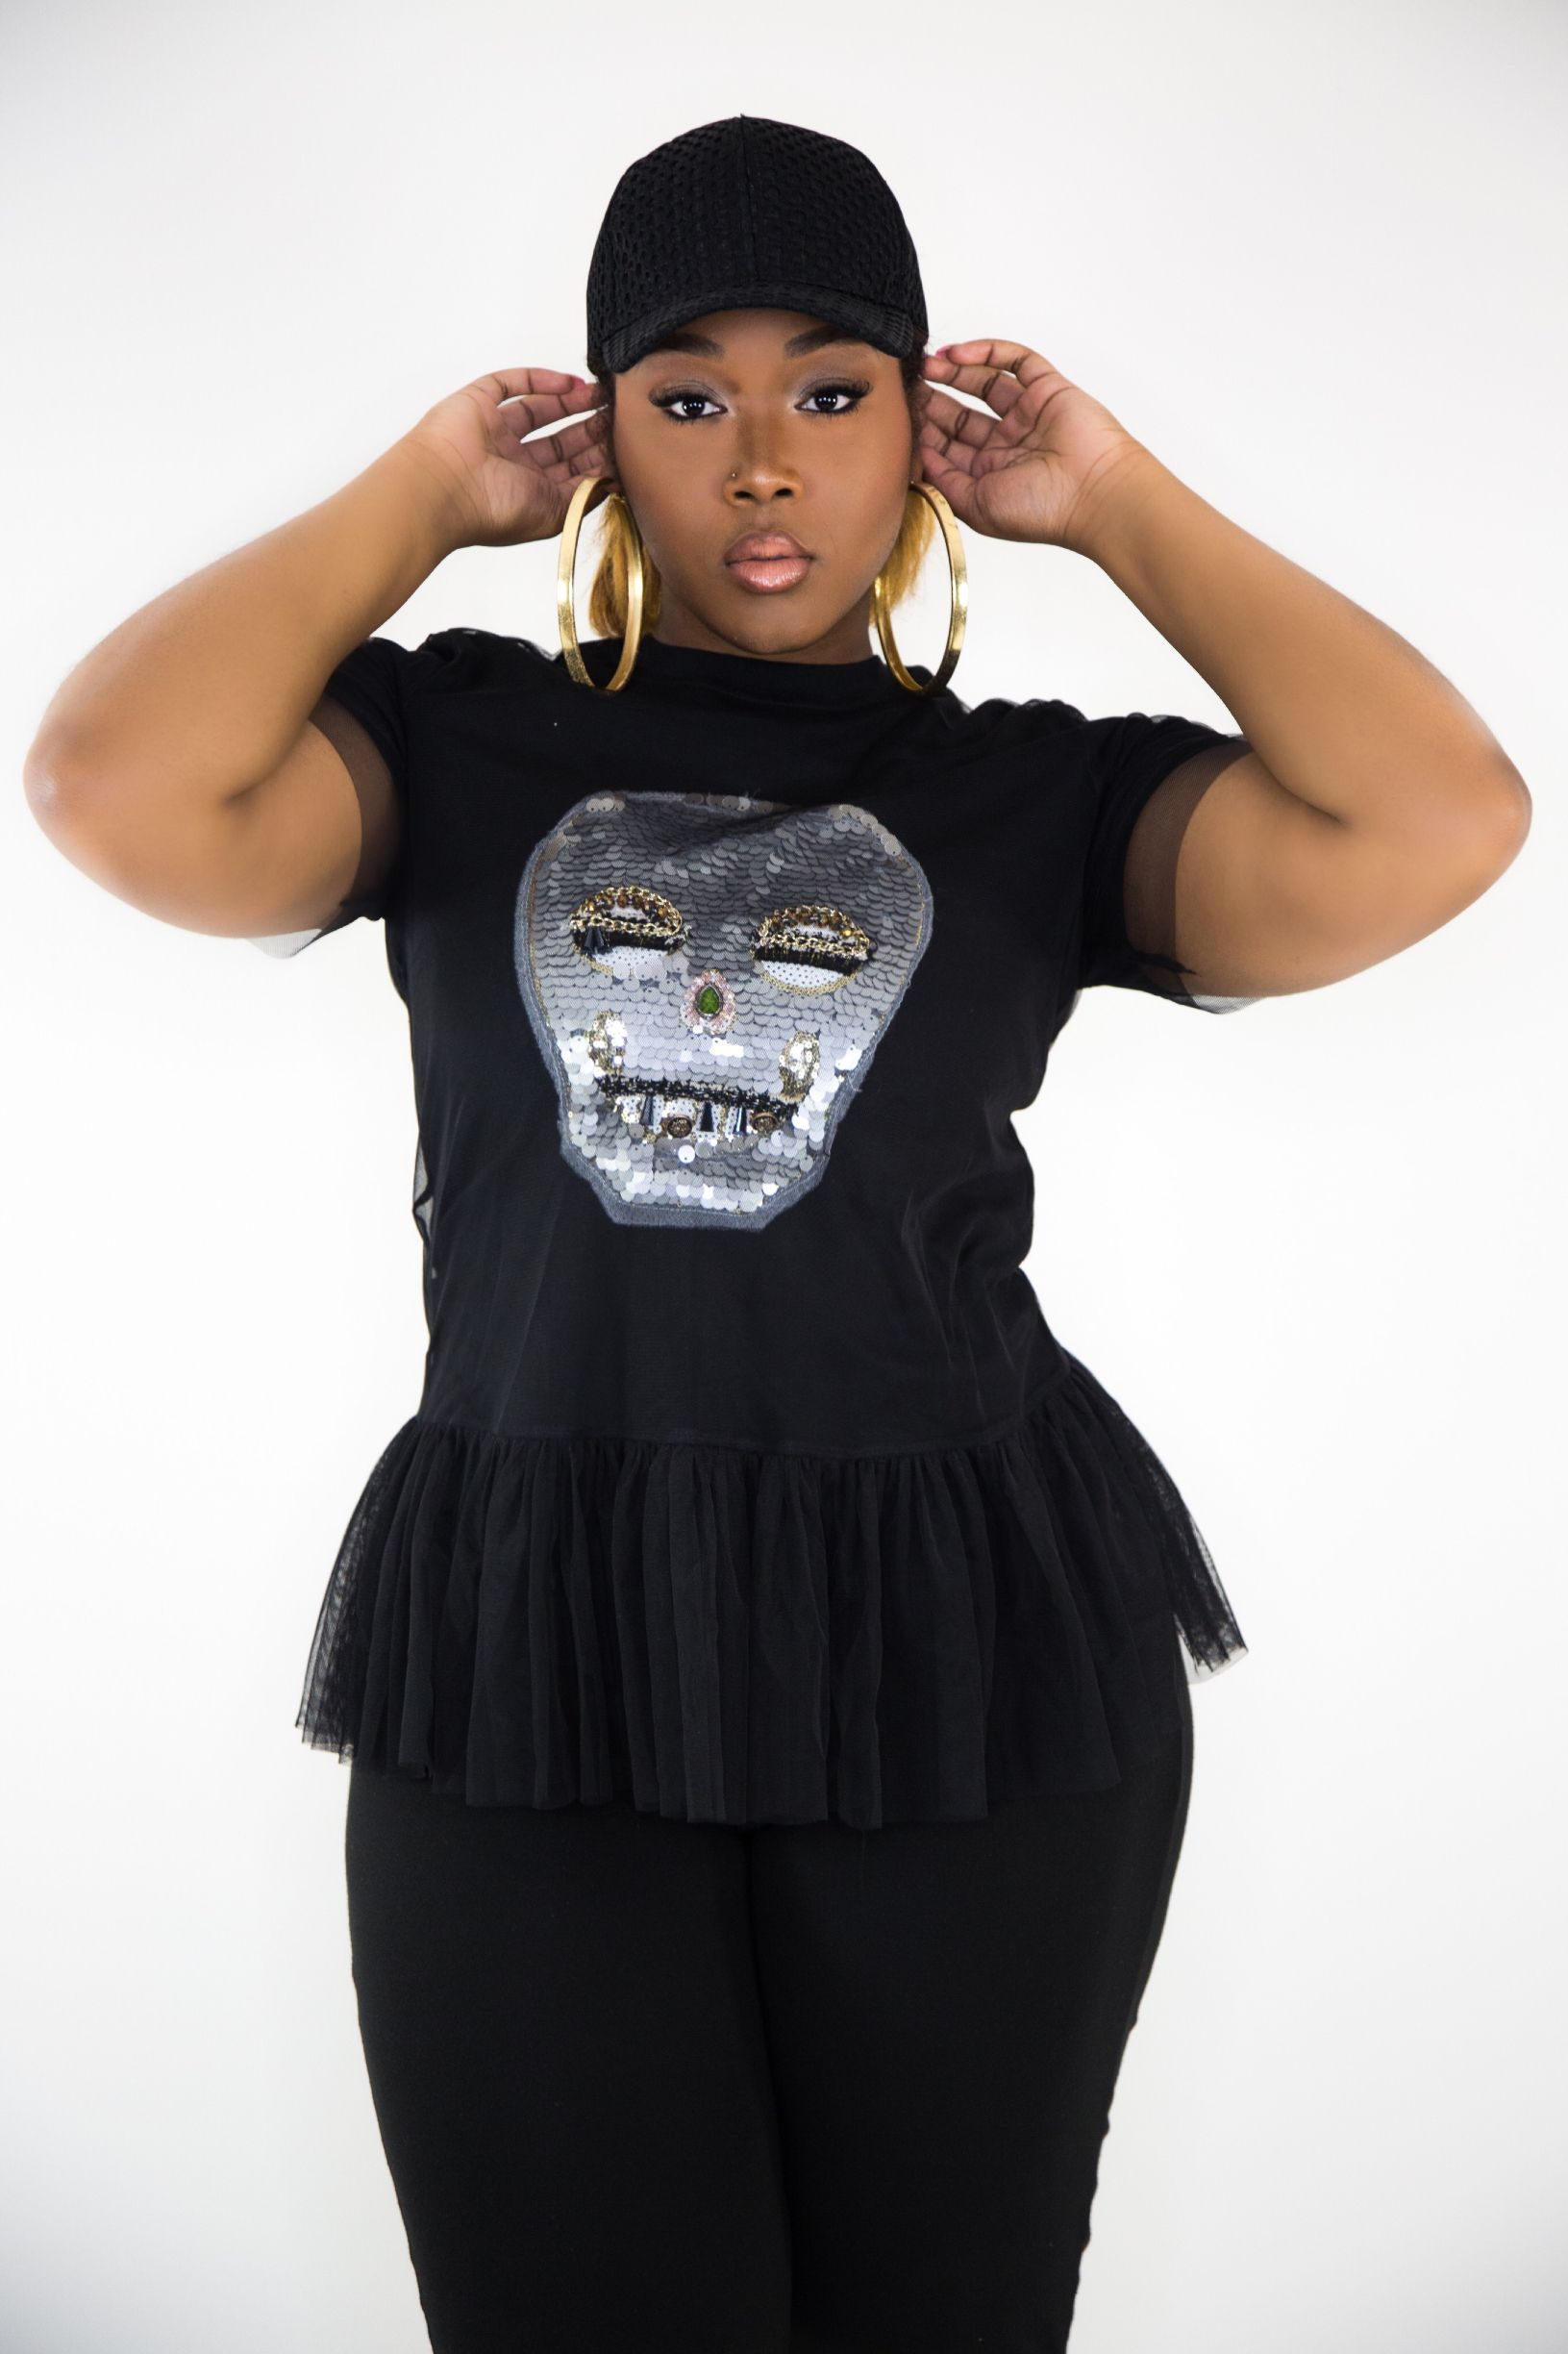 Available in Black  Cotton Undershirt. Jeweled Skull. A thin layer of black tulle peplum.